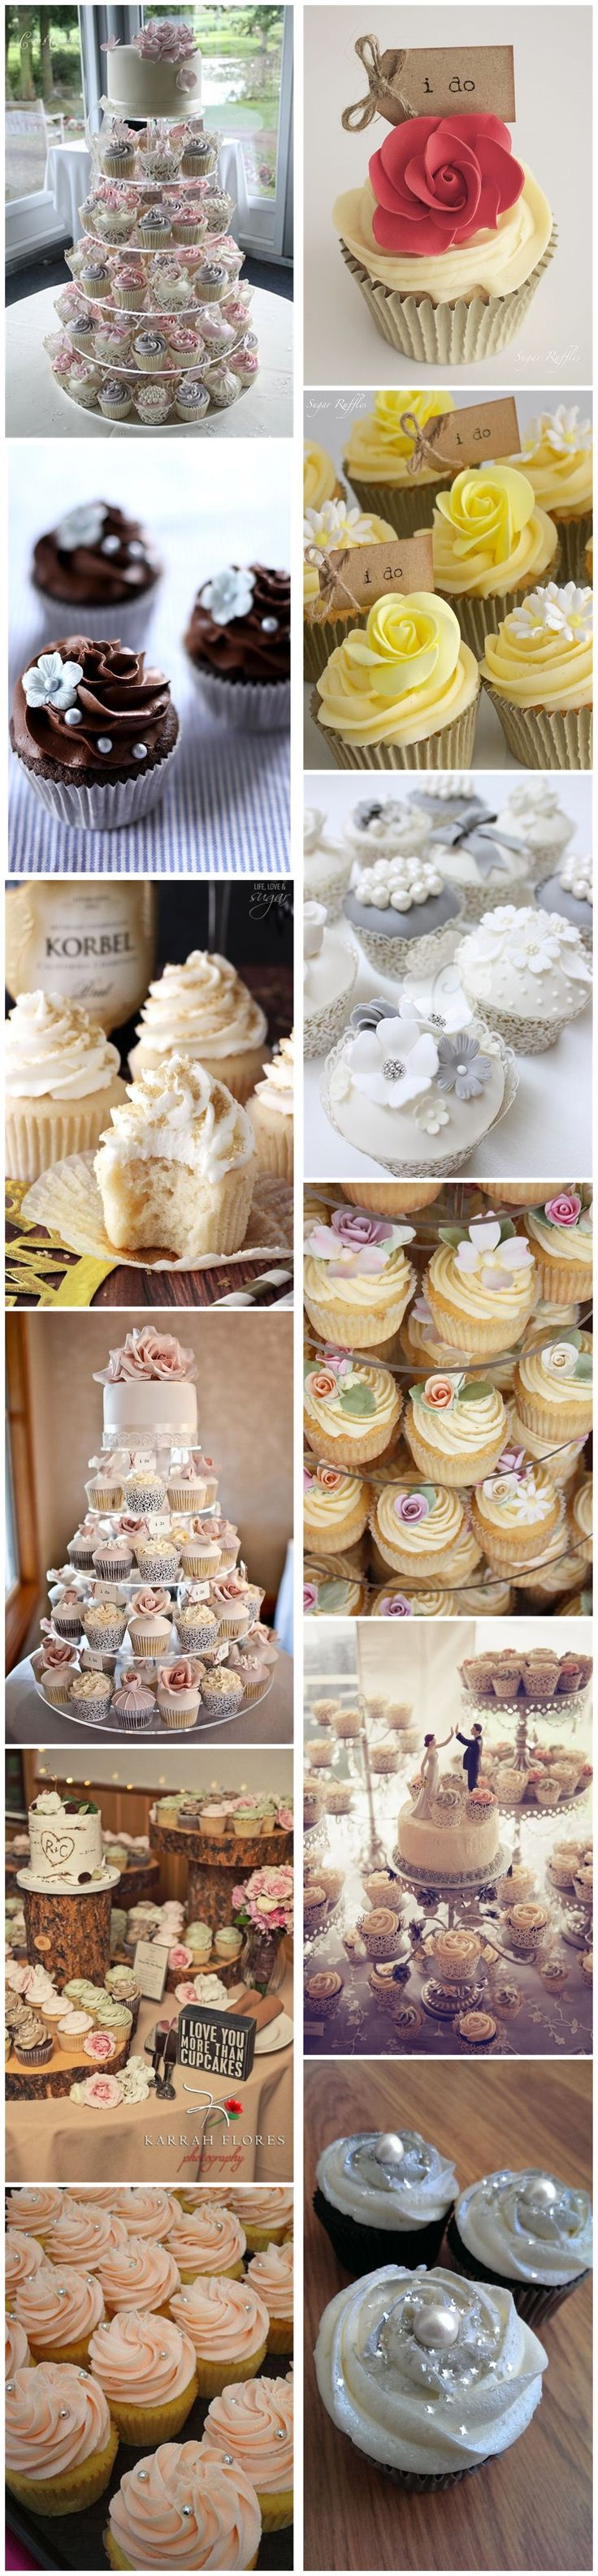 Wedding Cakes » 25 Inpressive Small Wedding Cupcakes with Big Styles❤️ See more: http://www.weddinginclude.com/2017/02/inpressive-small-wedding-cupcakes-with-big-styles/